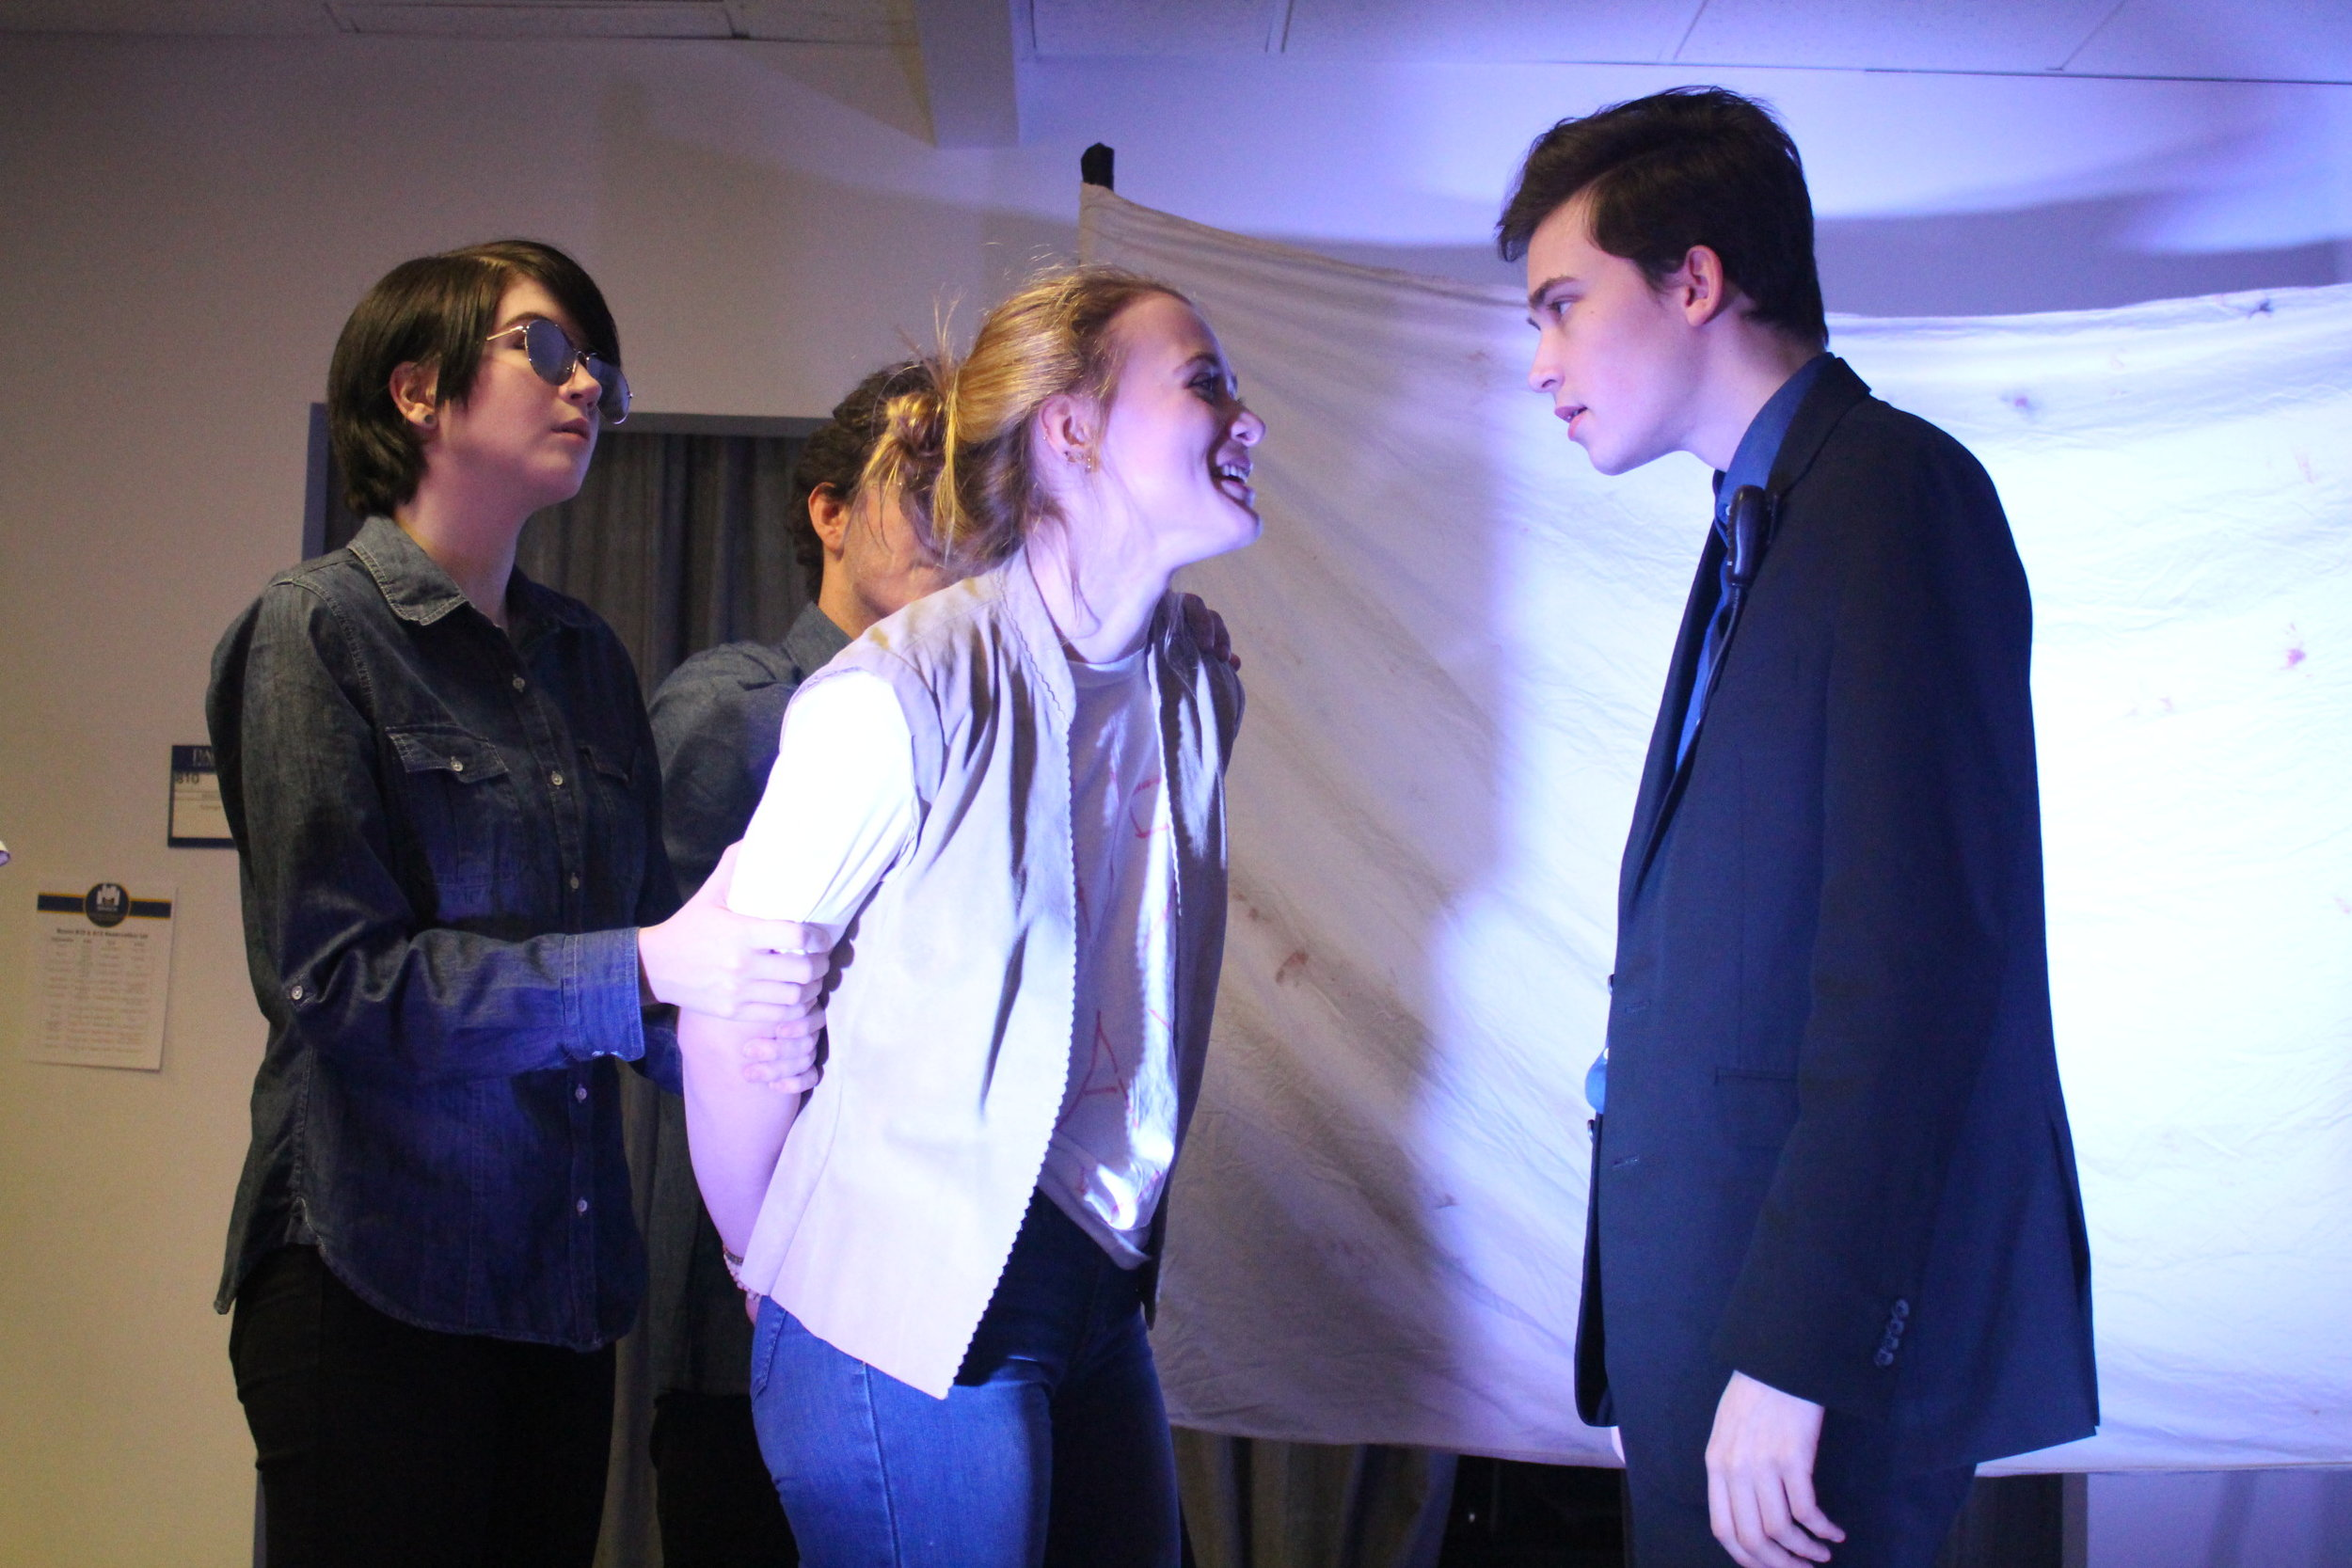 "(L to R) Cheyenne Anderson, Sam Korobkin, Ona Martini, and Taylor Larson in ""The Untold Yippie Project"" by Becca Schlossberg."